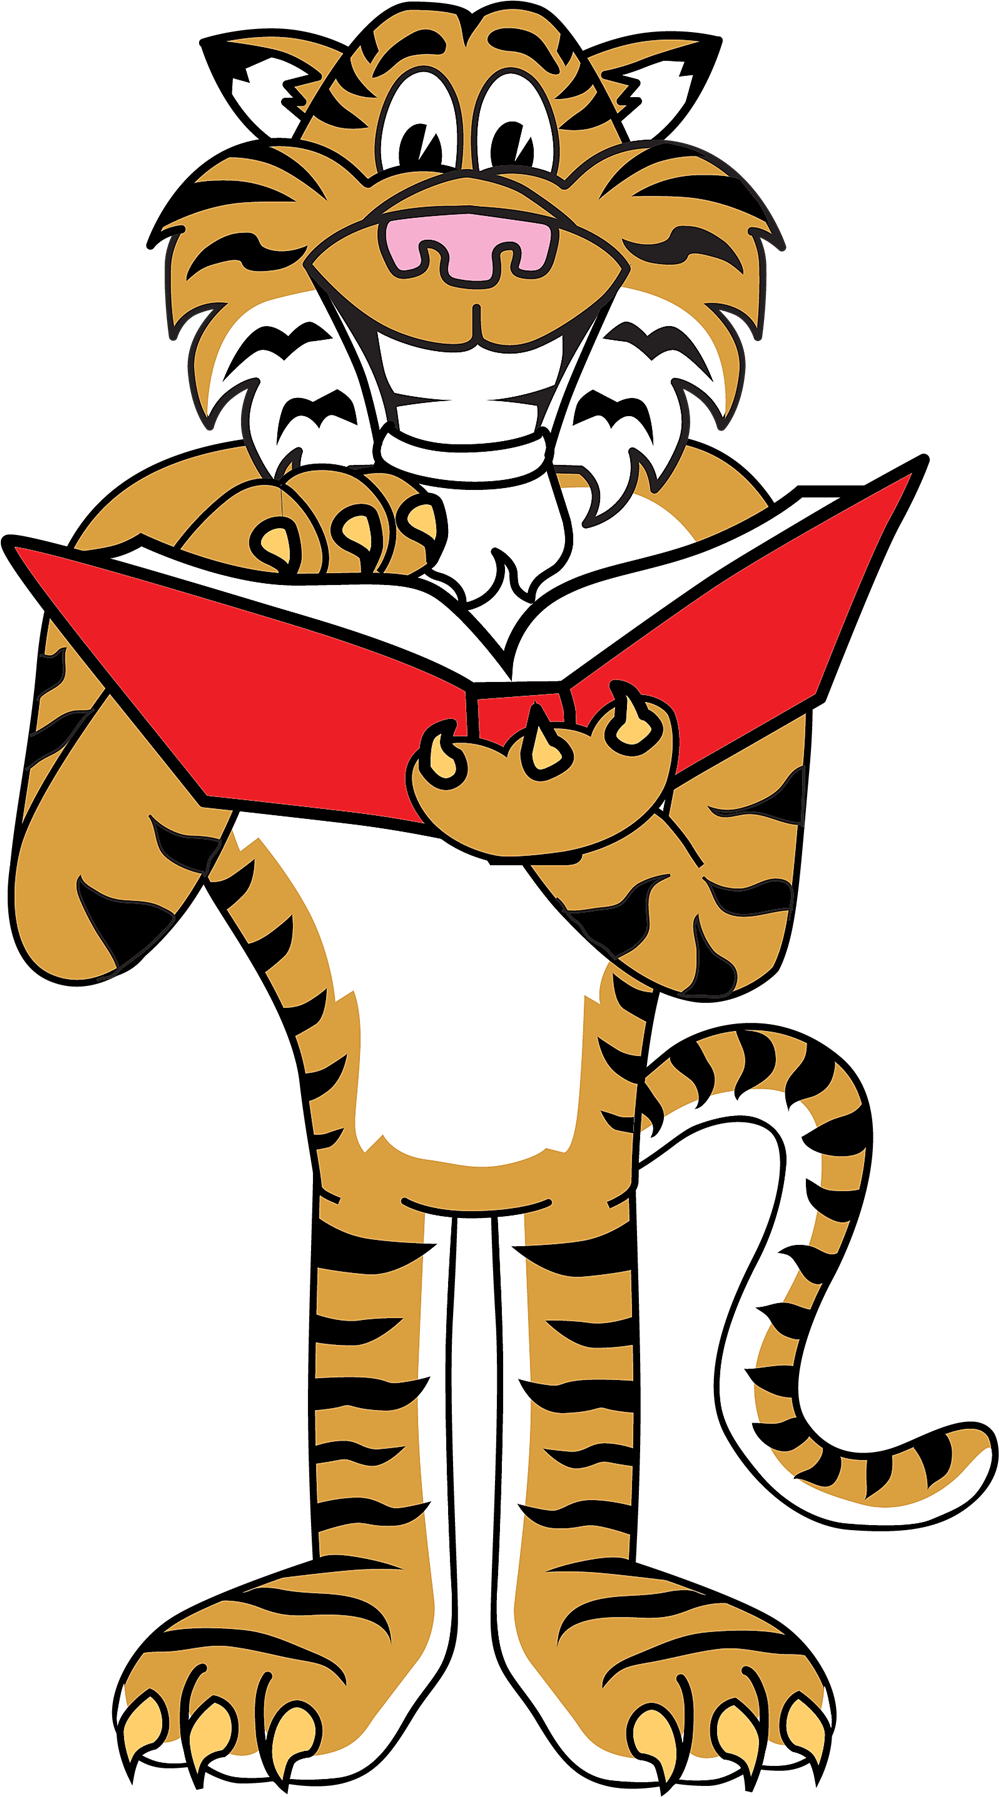 tiger mascot holding a book